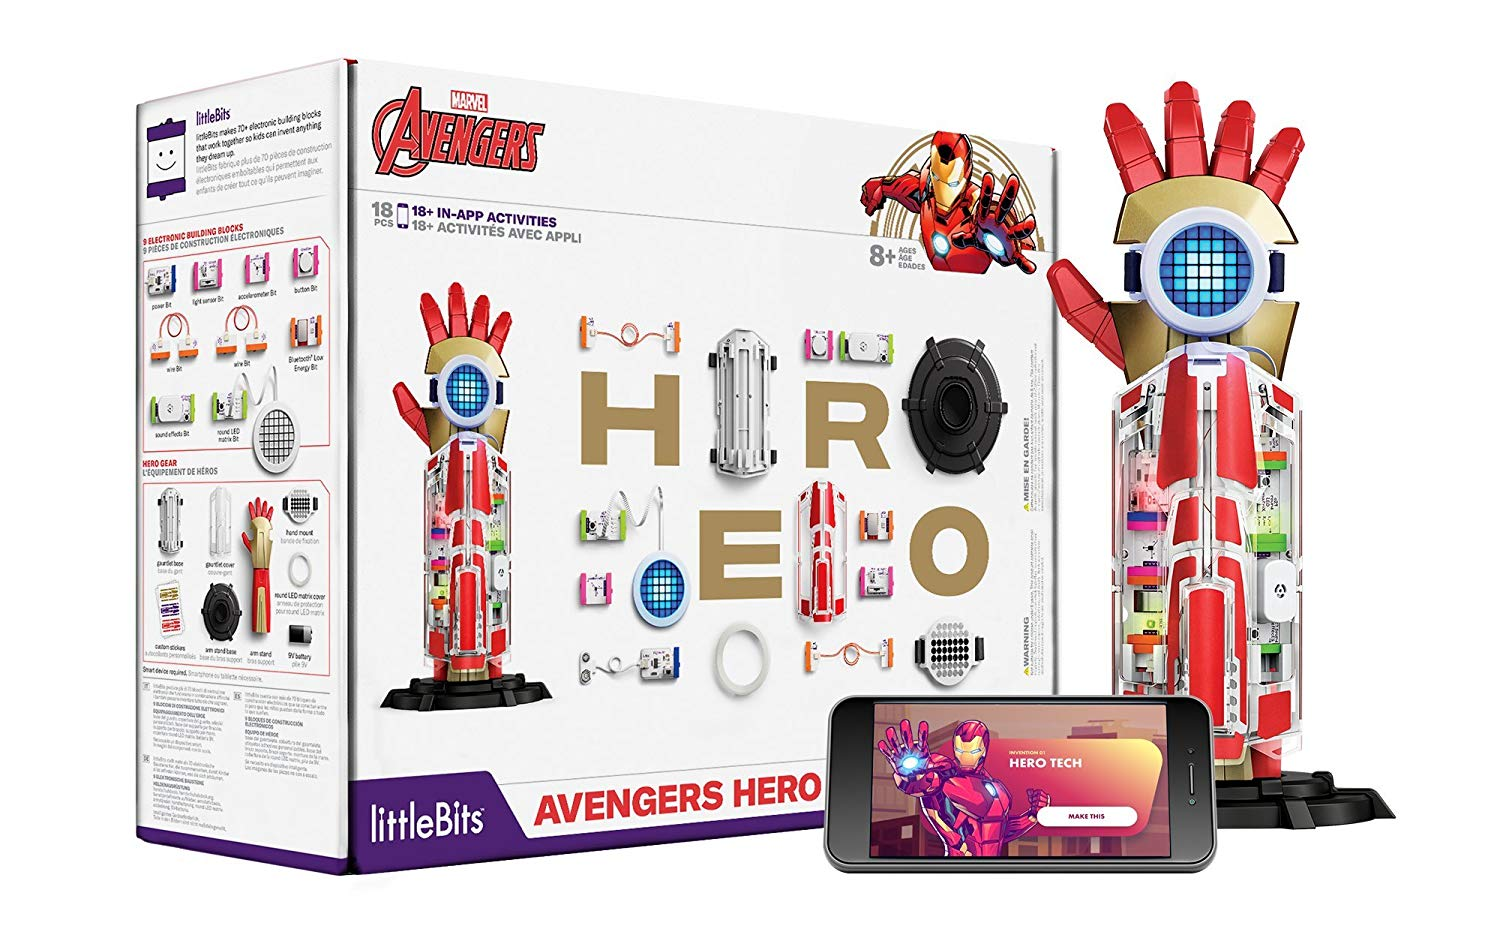 littleBits Avengers Hero Inventor Kit (18 Piece)